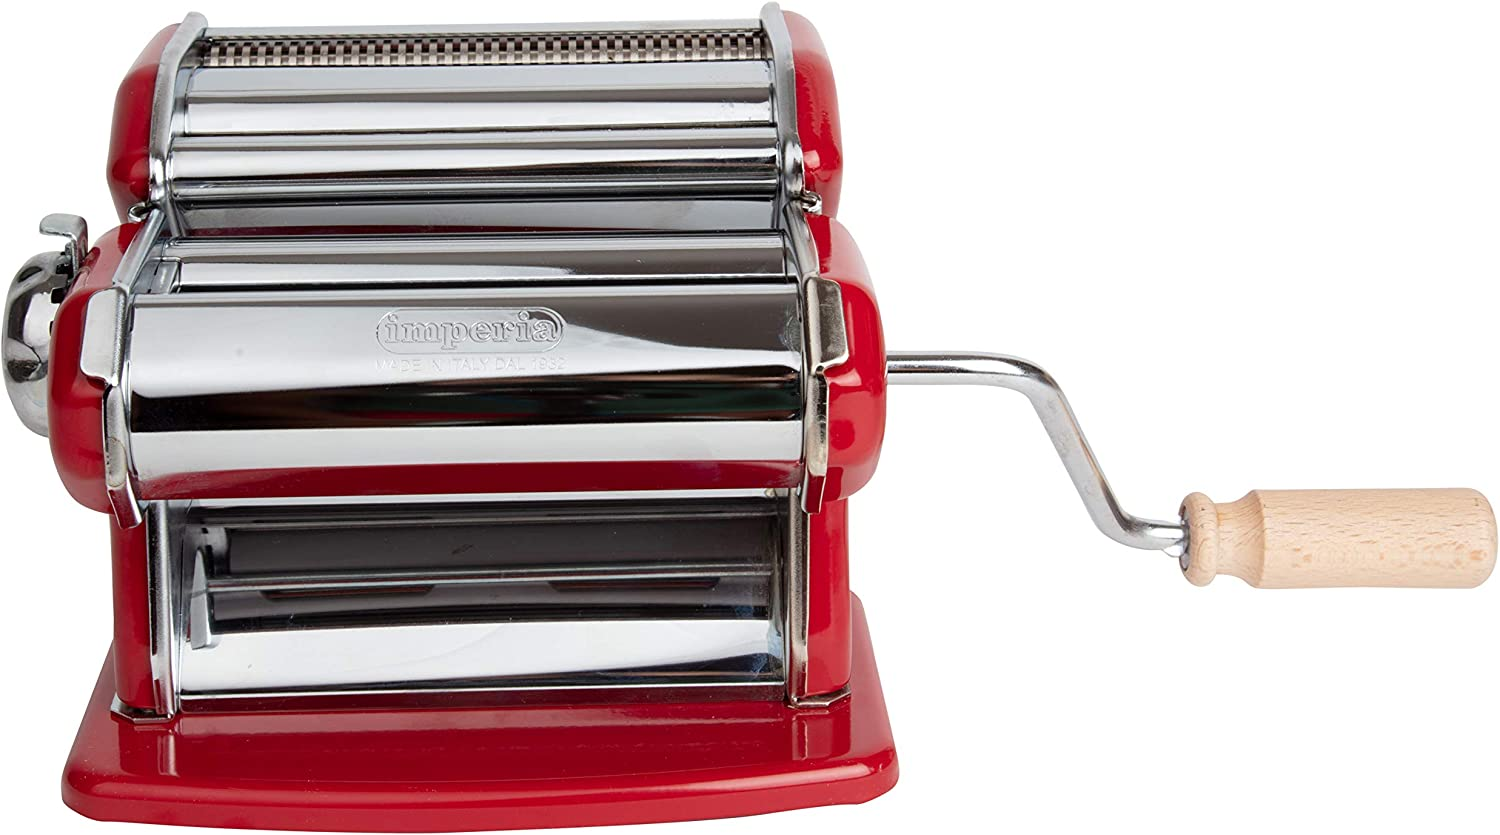 Red Heavy Duty Steel Construction with Easy Lock Dial /& Wood Grip Handle for Italian Cooking Imperia Pasta Maker Machine